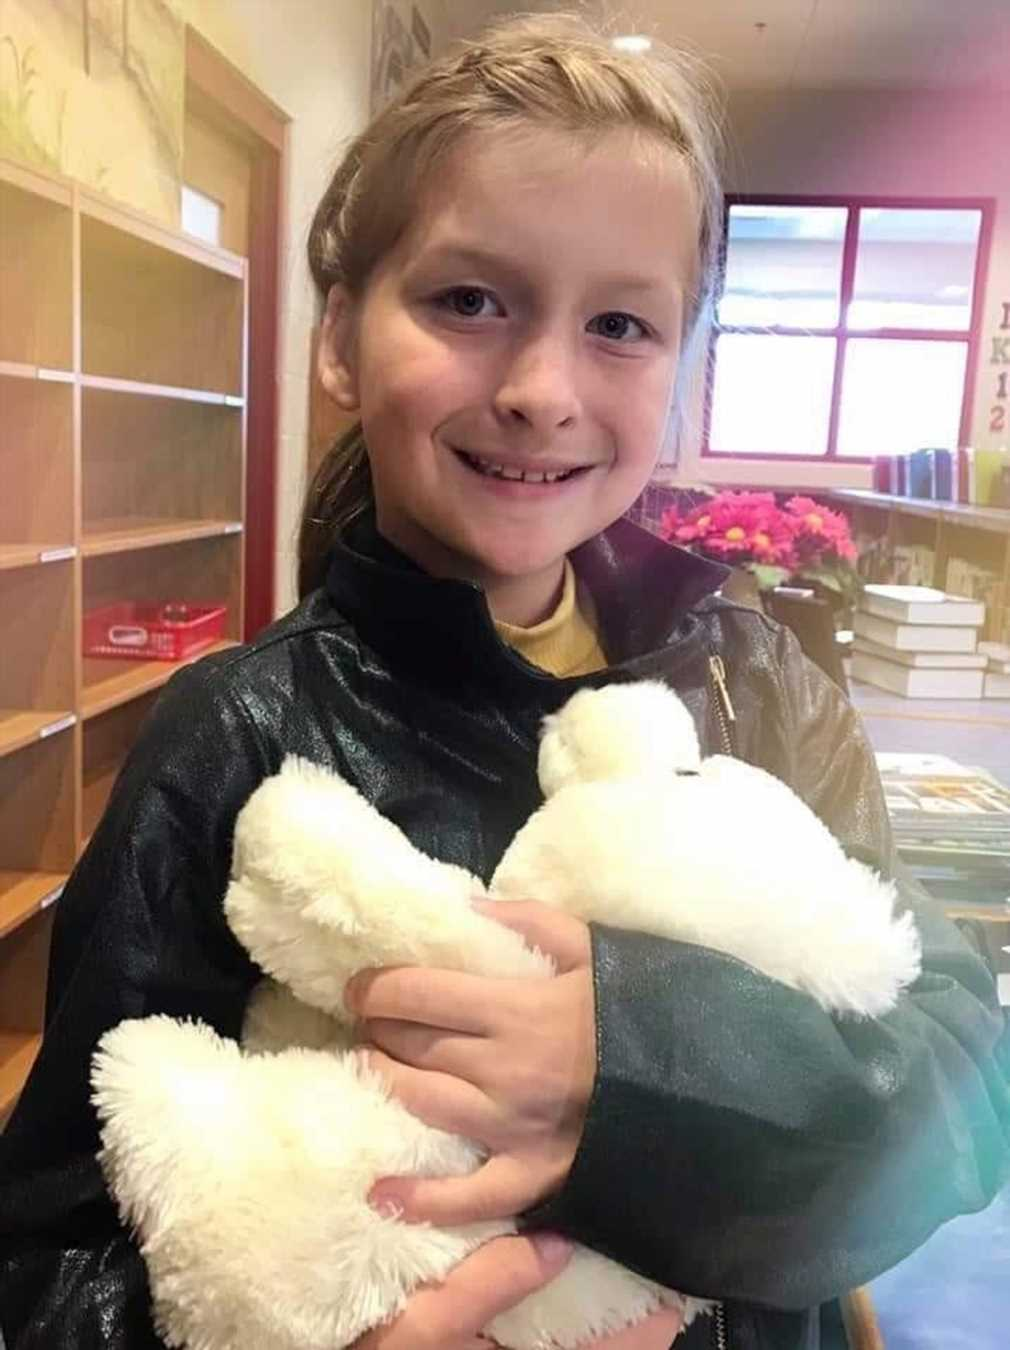 9-Year-Old Dies After Falling Off Bike in 'Freak Accident' on Her Birthday: It's 'a Nightmare'